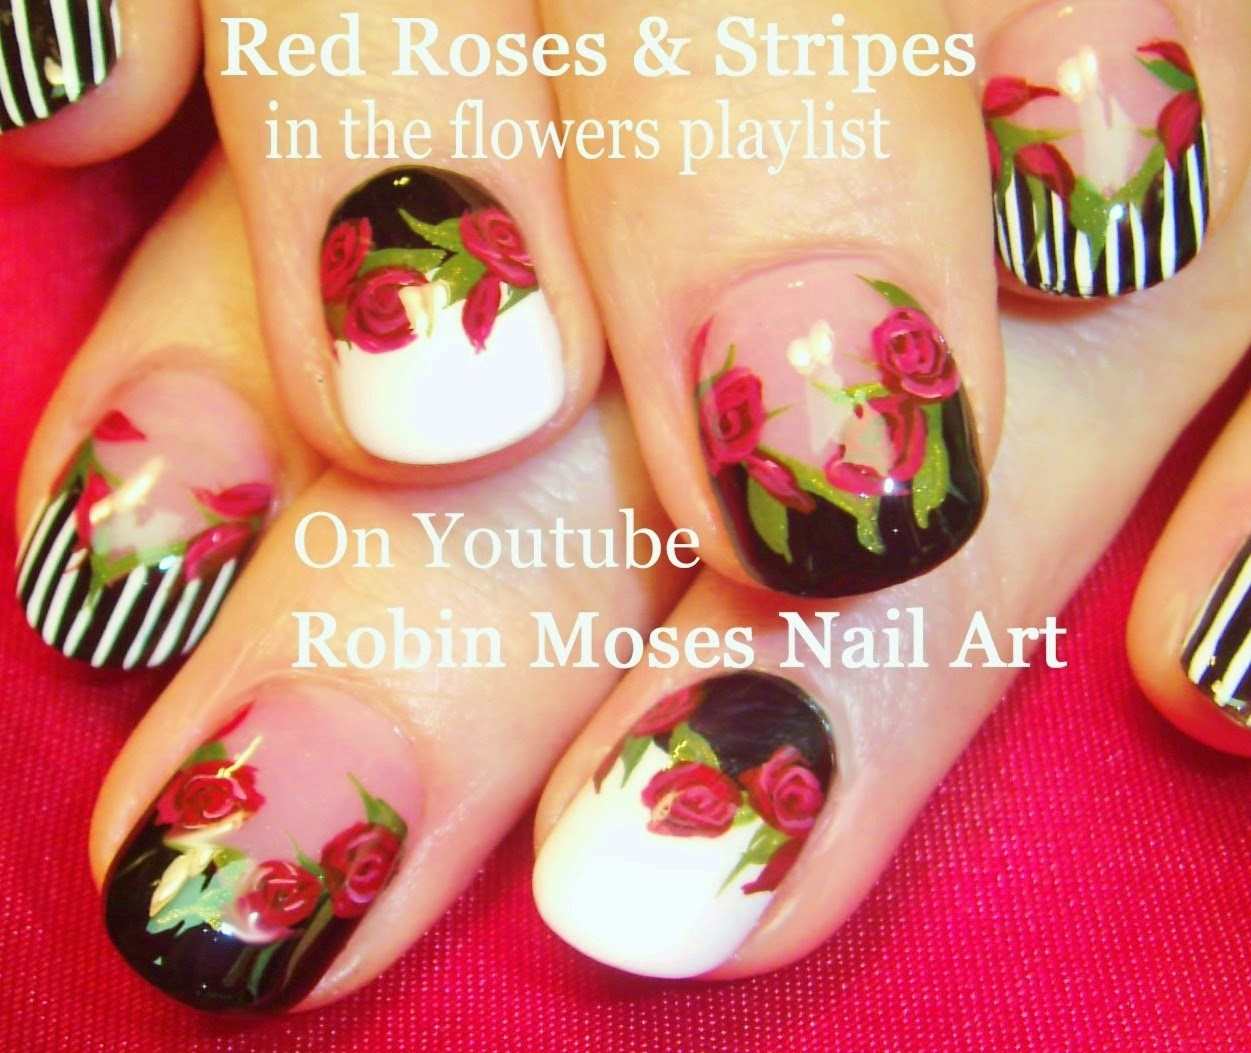 Robin moses nail art rose nails roses nail art dark flower 5 nail art tutorials diy nail designs red roses stripes prinsesfo Gallery